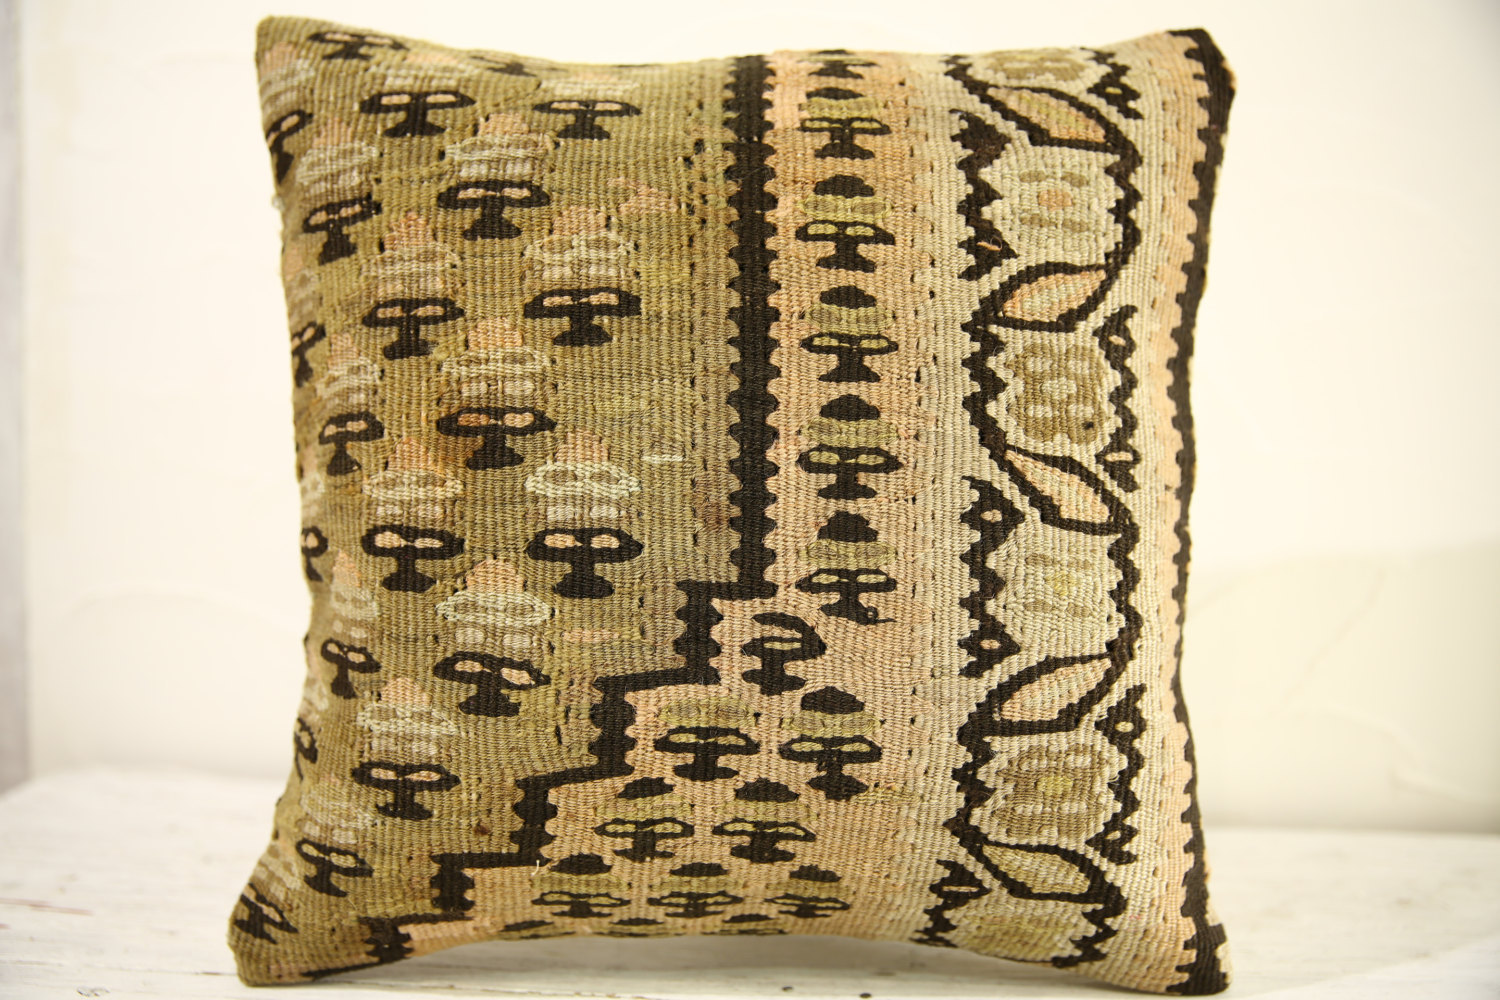 Kilim Pillows |16x16 | Decorative Pillows | 529 | Accent Pillows turkish pillow